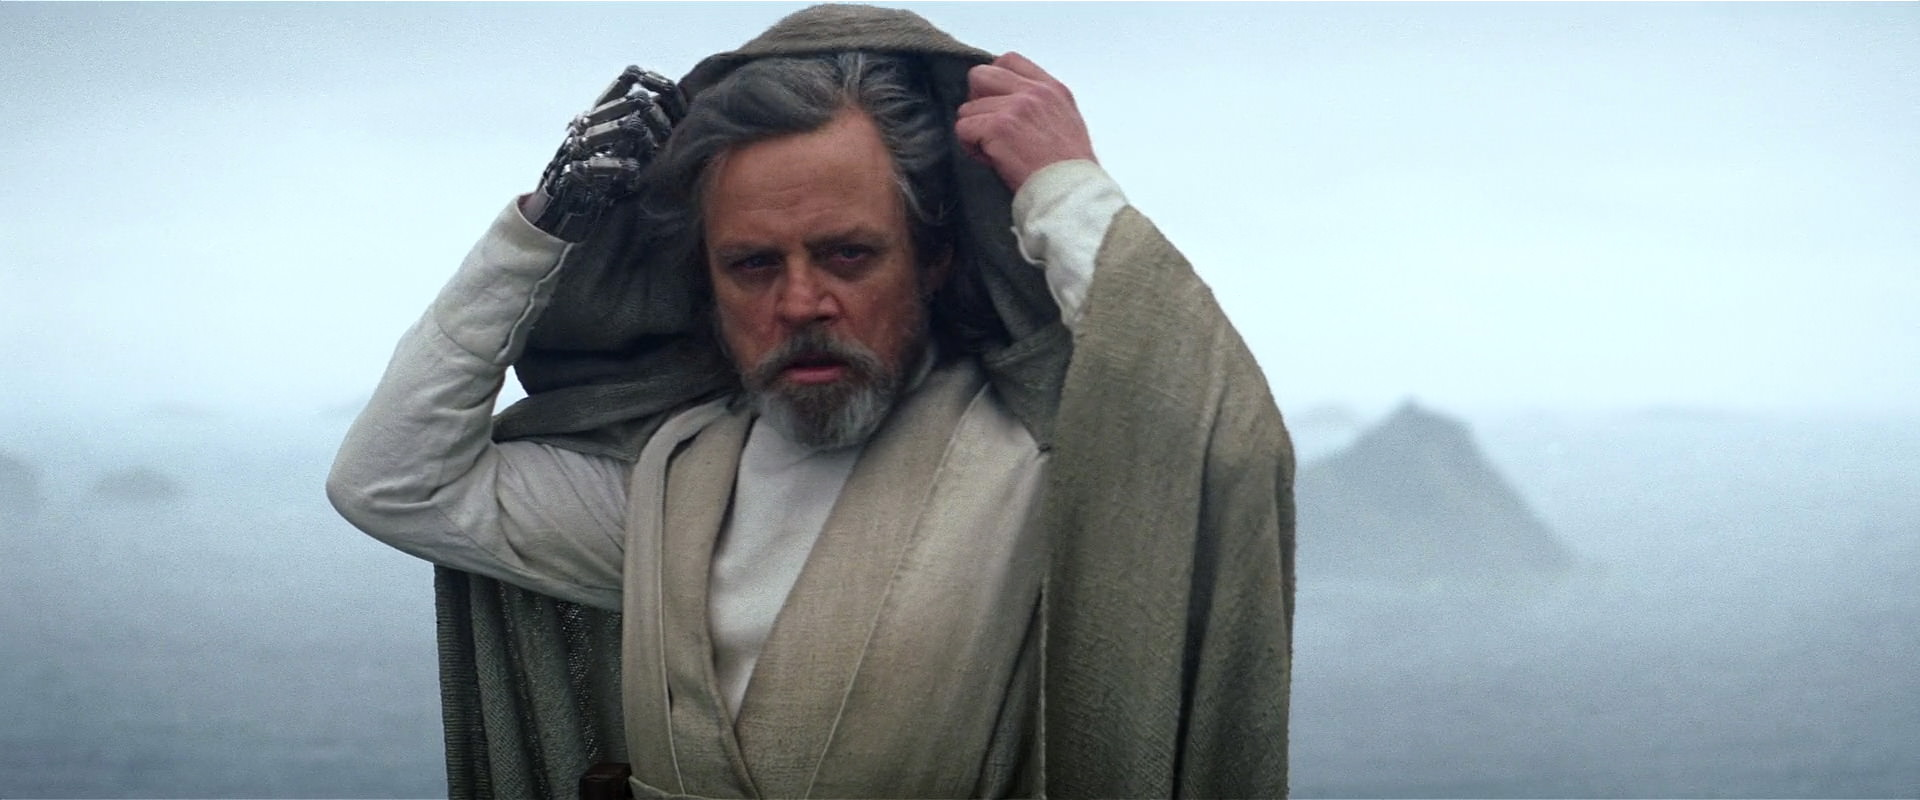 Star Wars: The Last Jedi's first footage shown